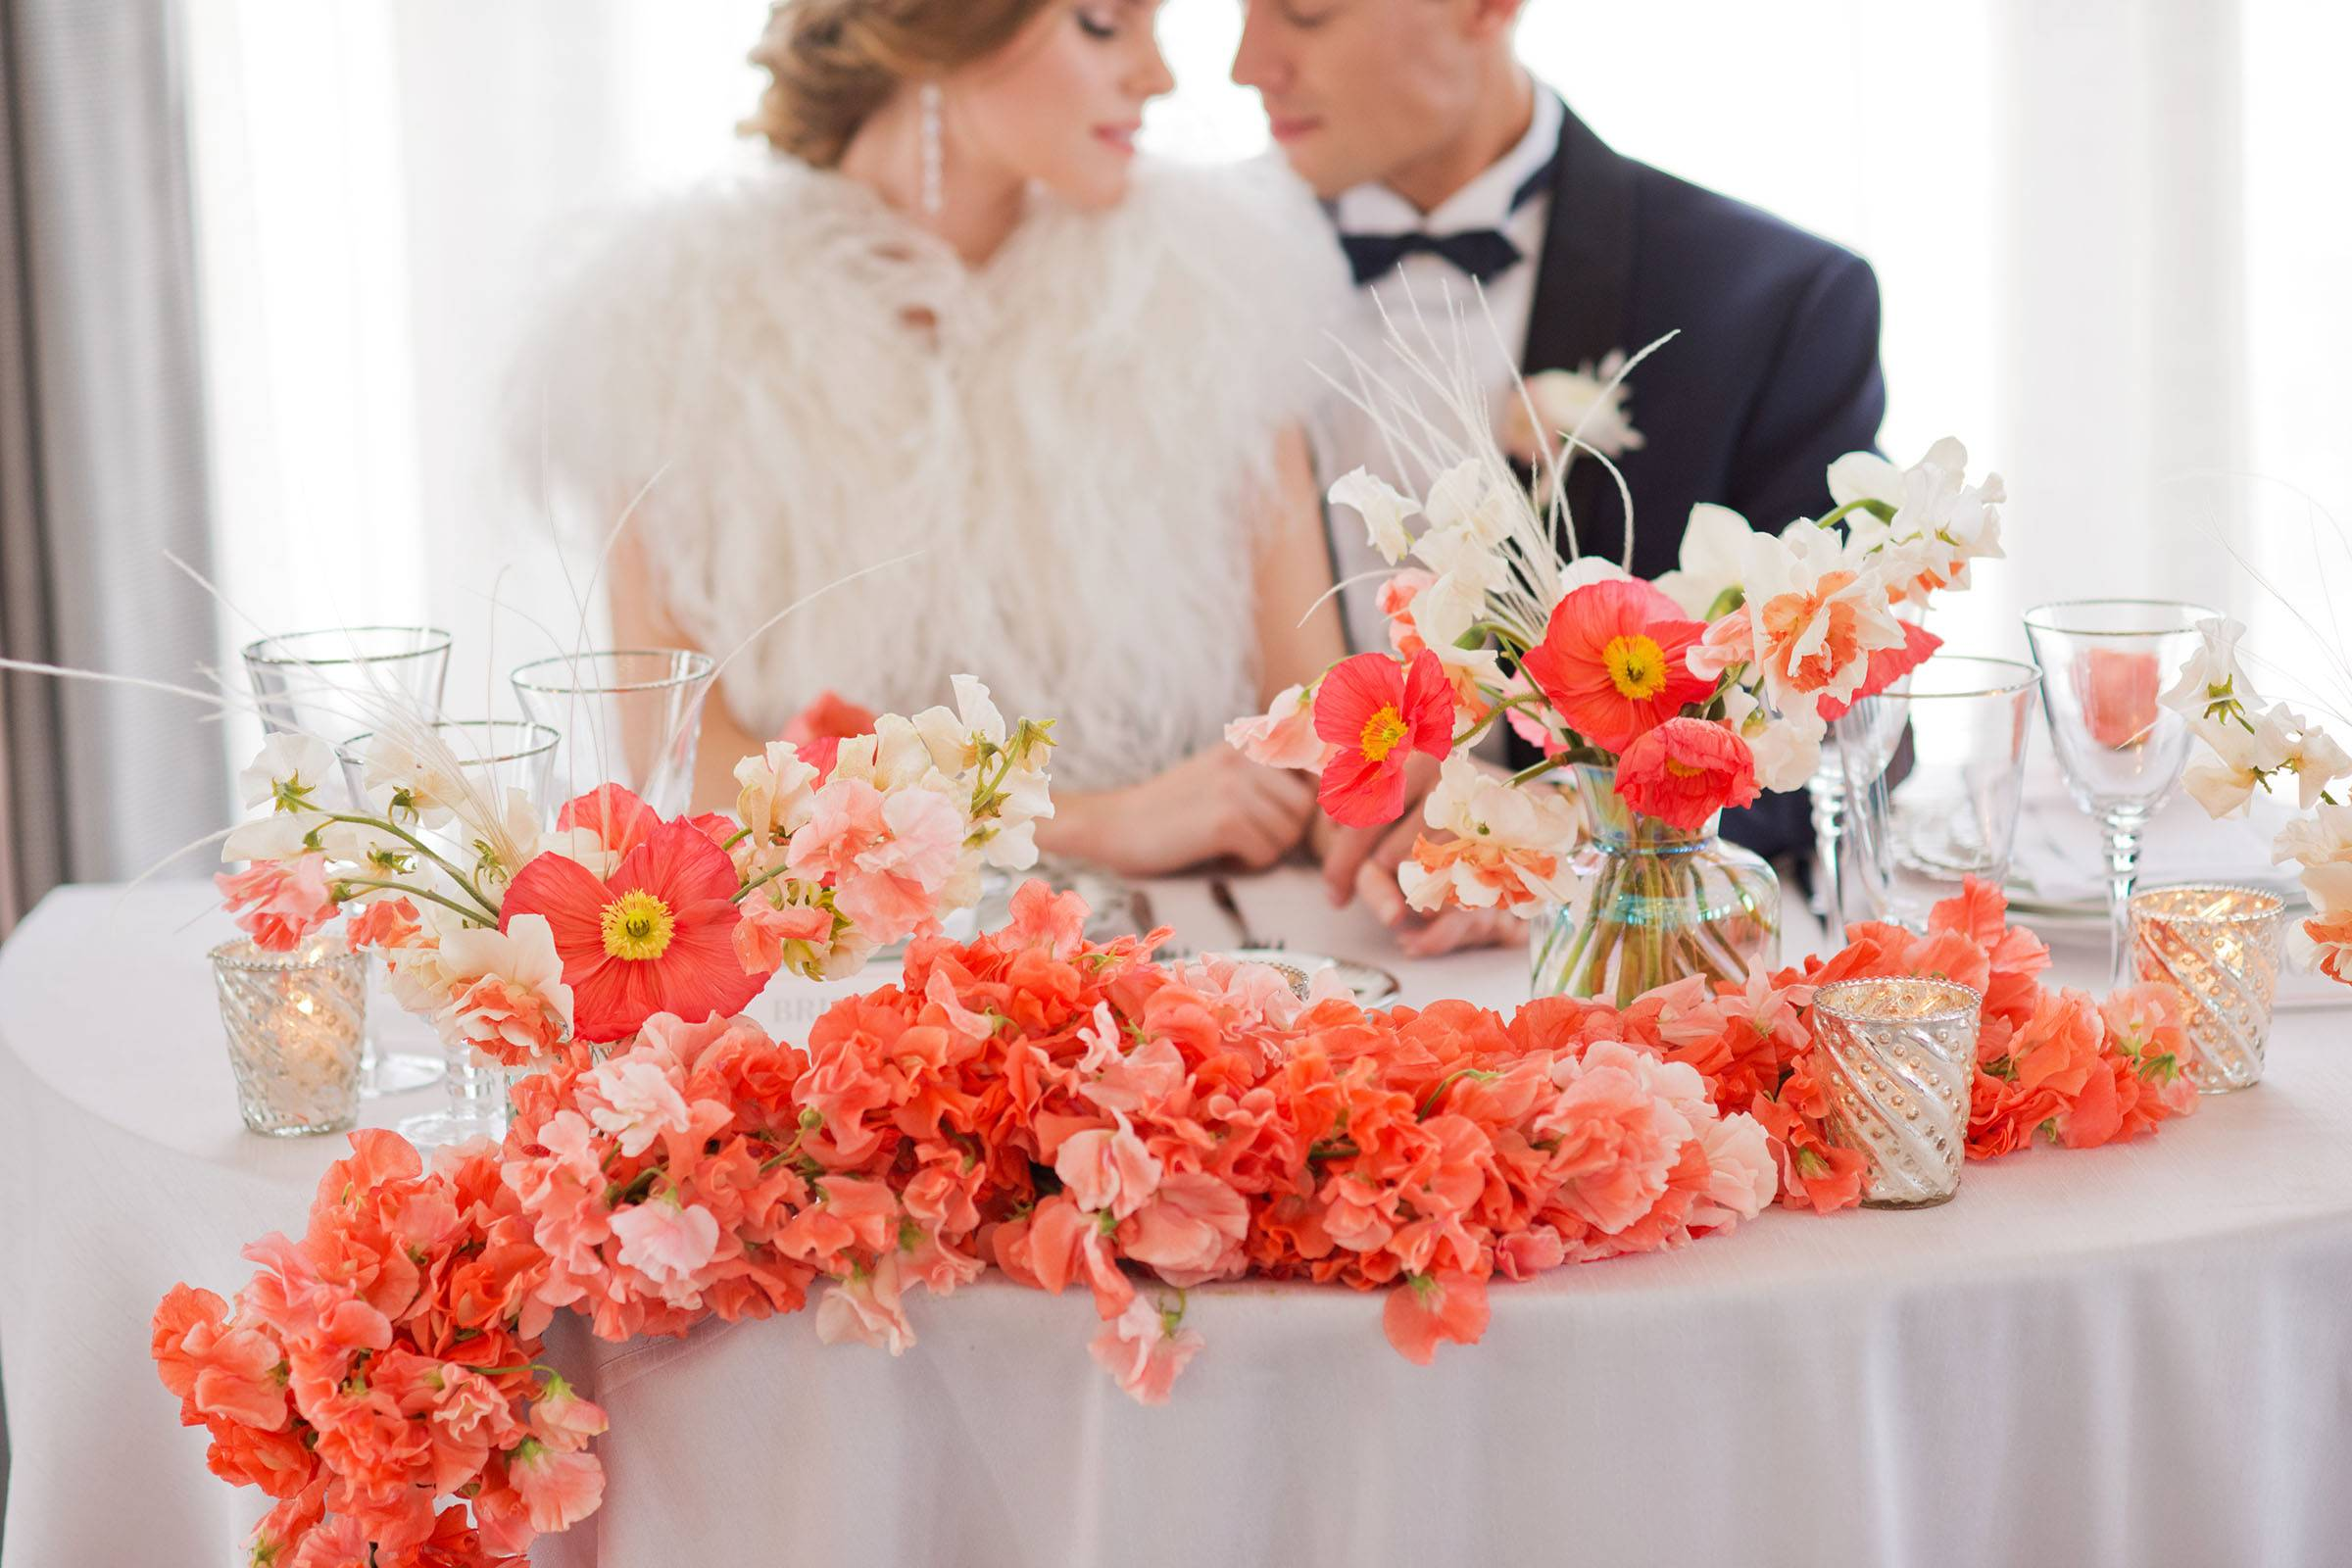 Living coral floral table runner of sweet pea blooms and poppies